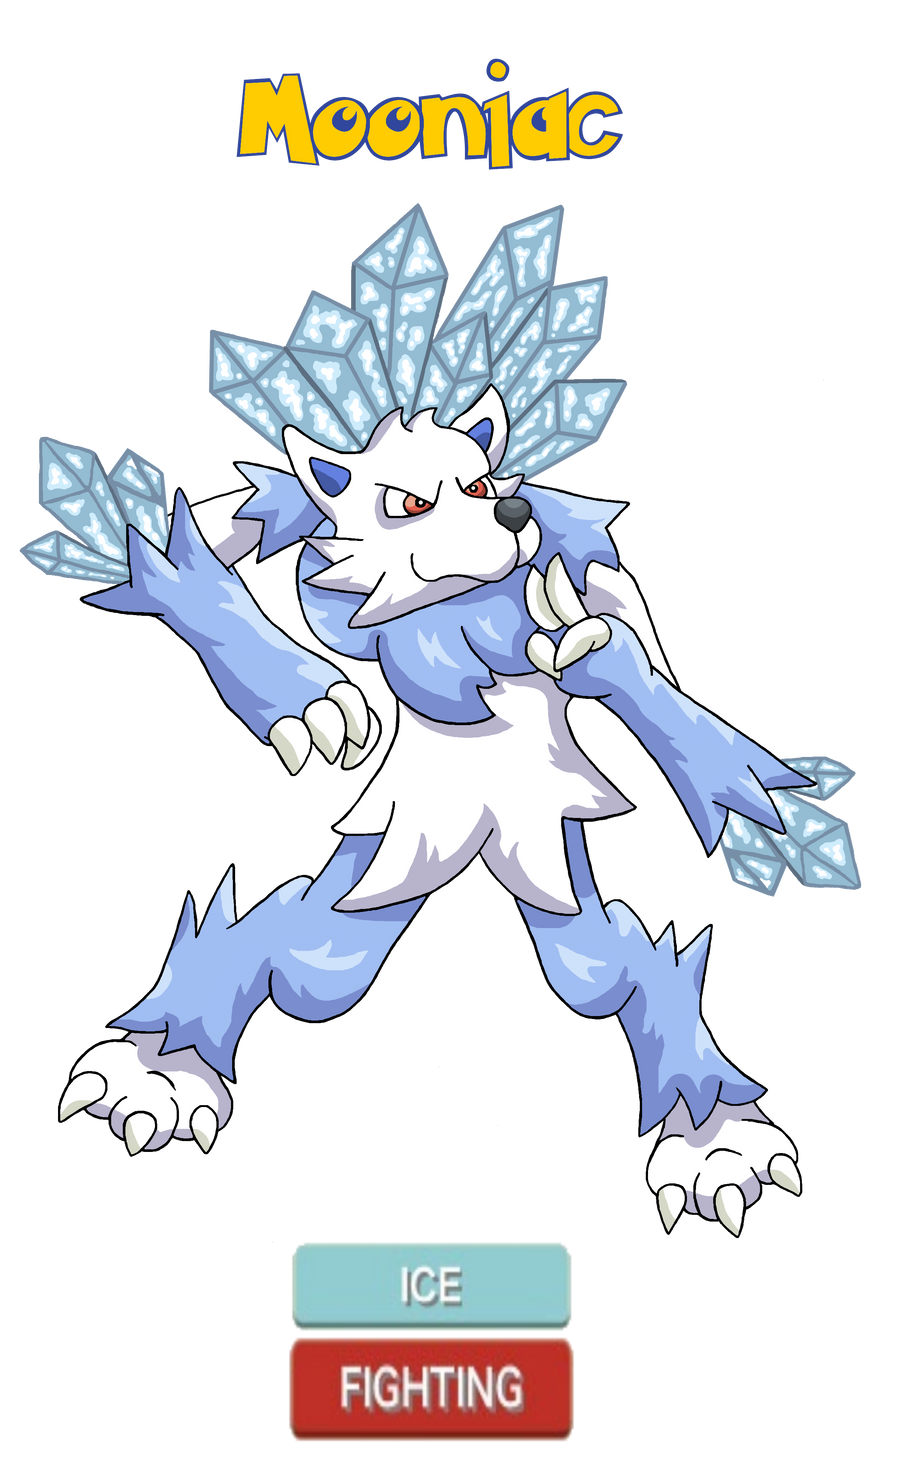 Commission - Kiyofo's Fakemon, Mooniac by Trueform